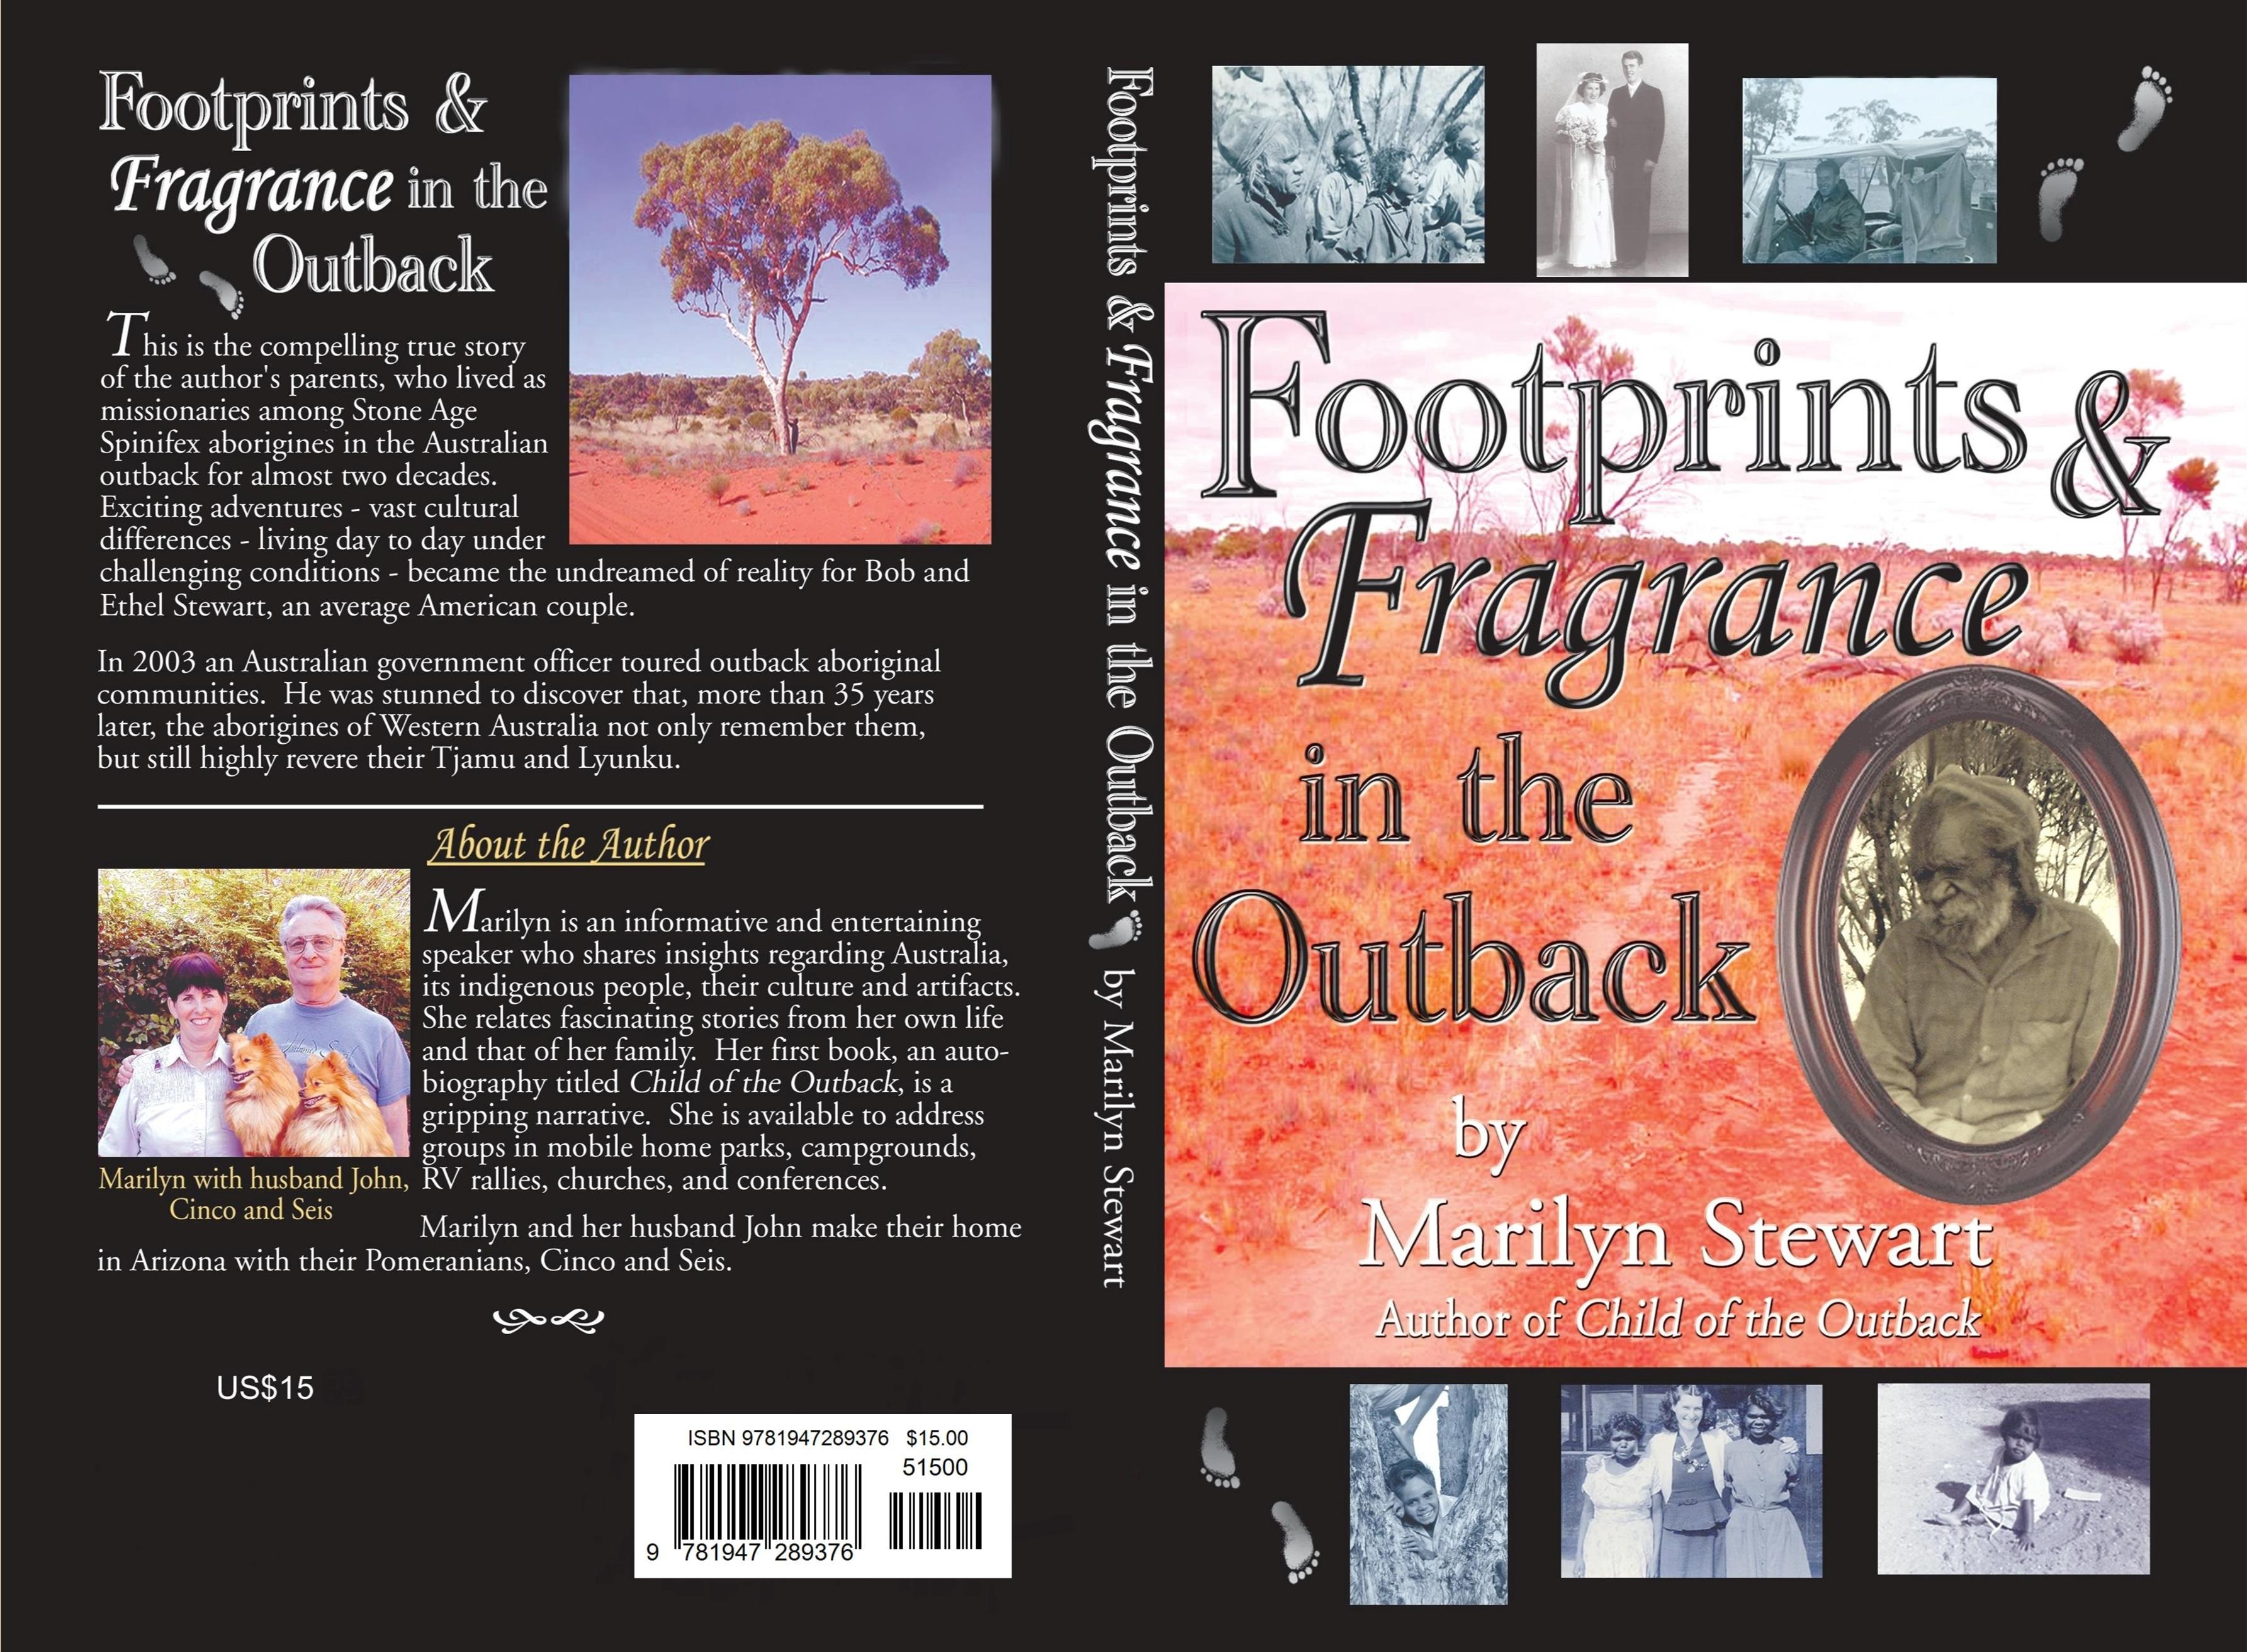 Footprints & Fragrance in the Outback cover image